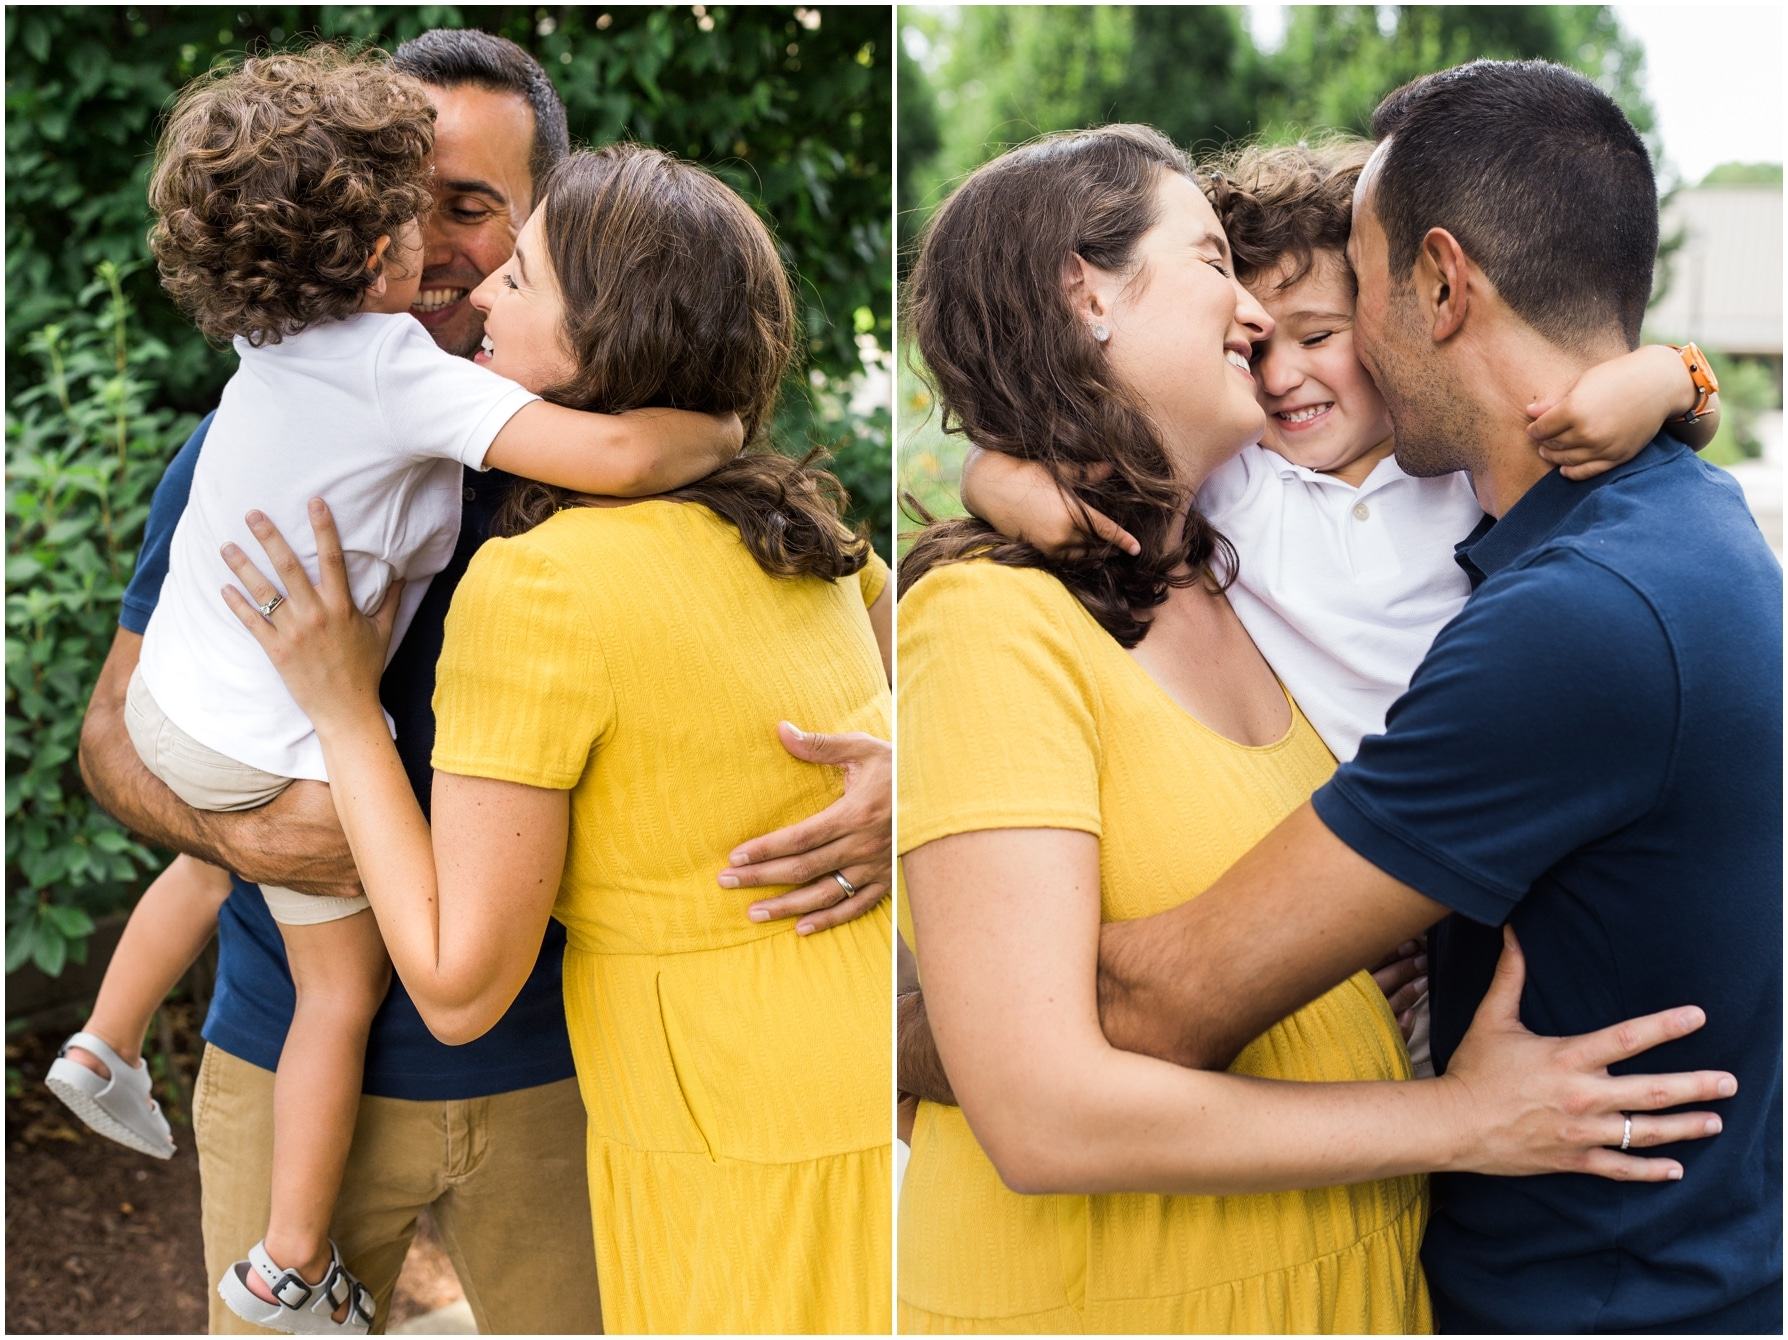 adam lowe photography / family session / Frankilin Park Conservatory